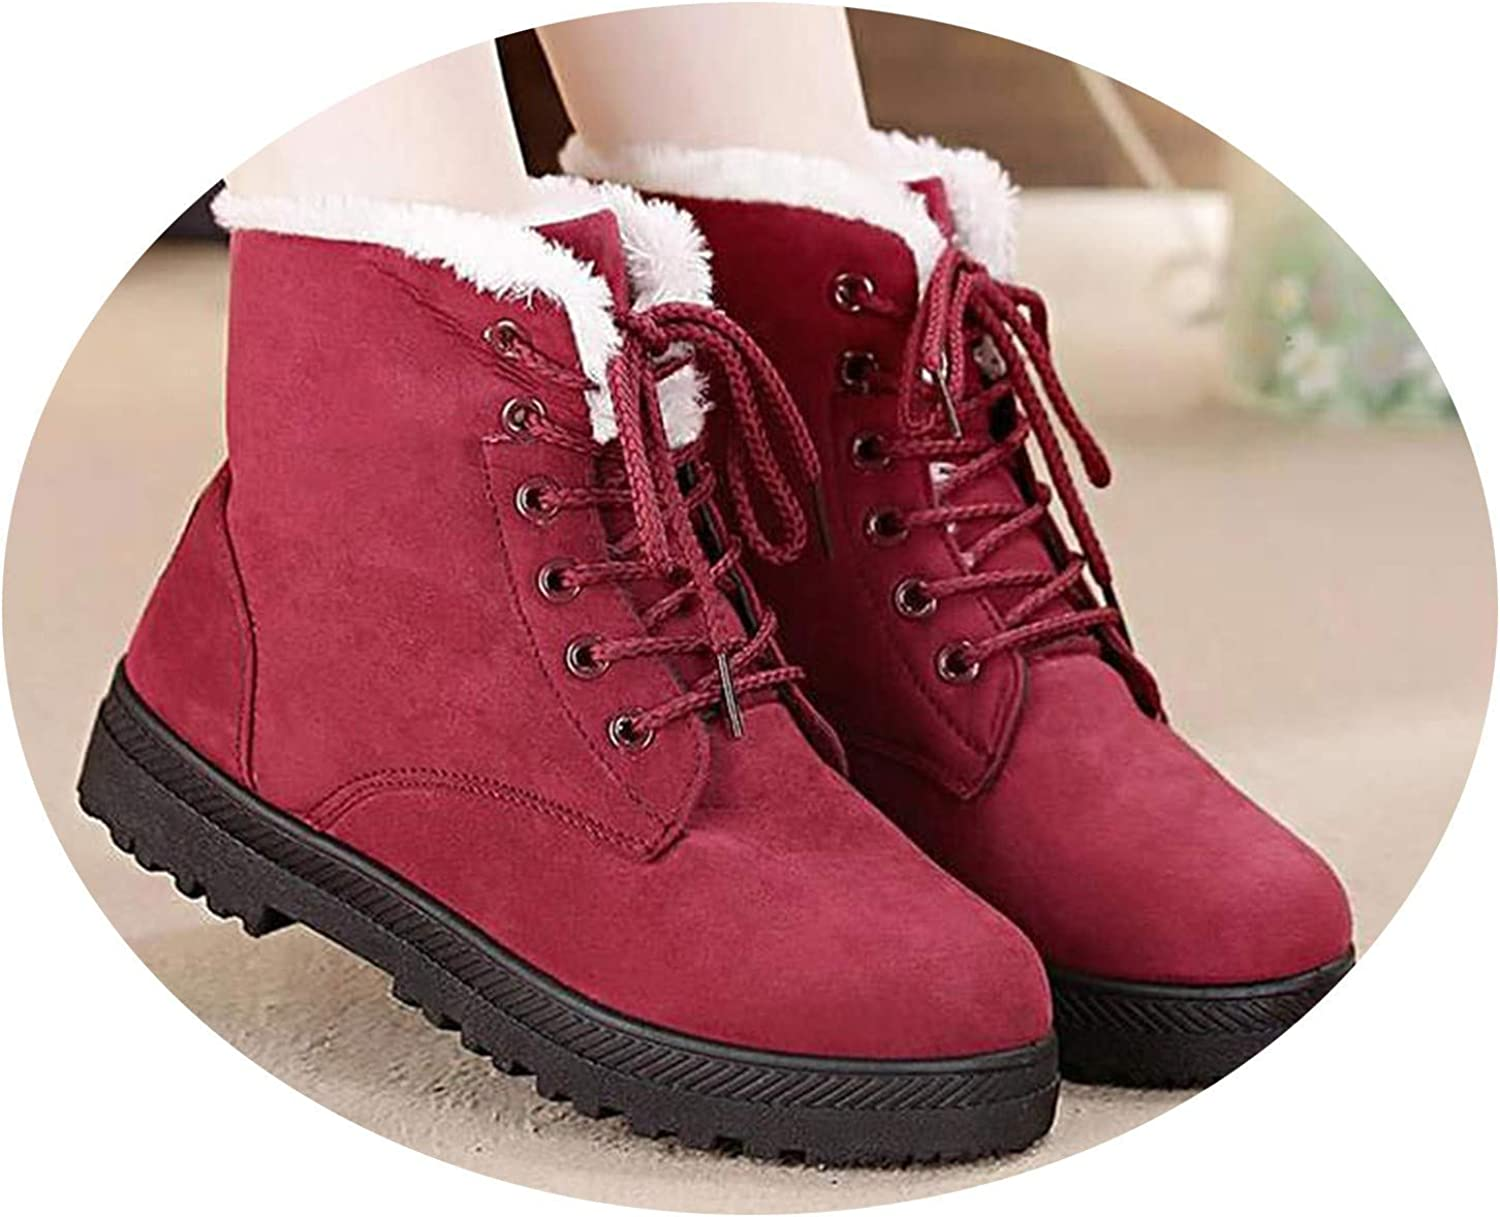 Snow Boots Classic Heels Suede Women Winter Warm Fur Plush Insole Ankle shoes,